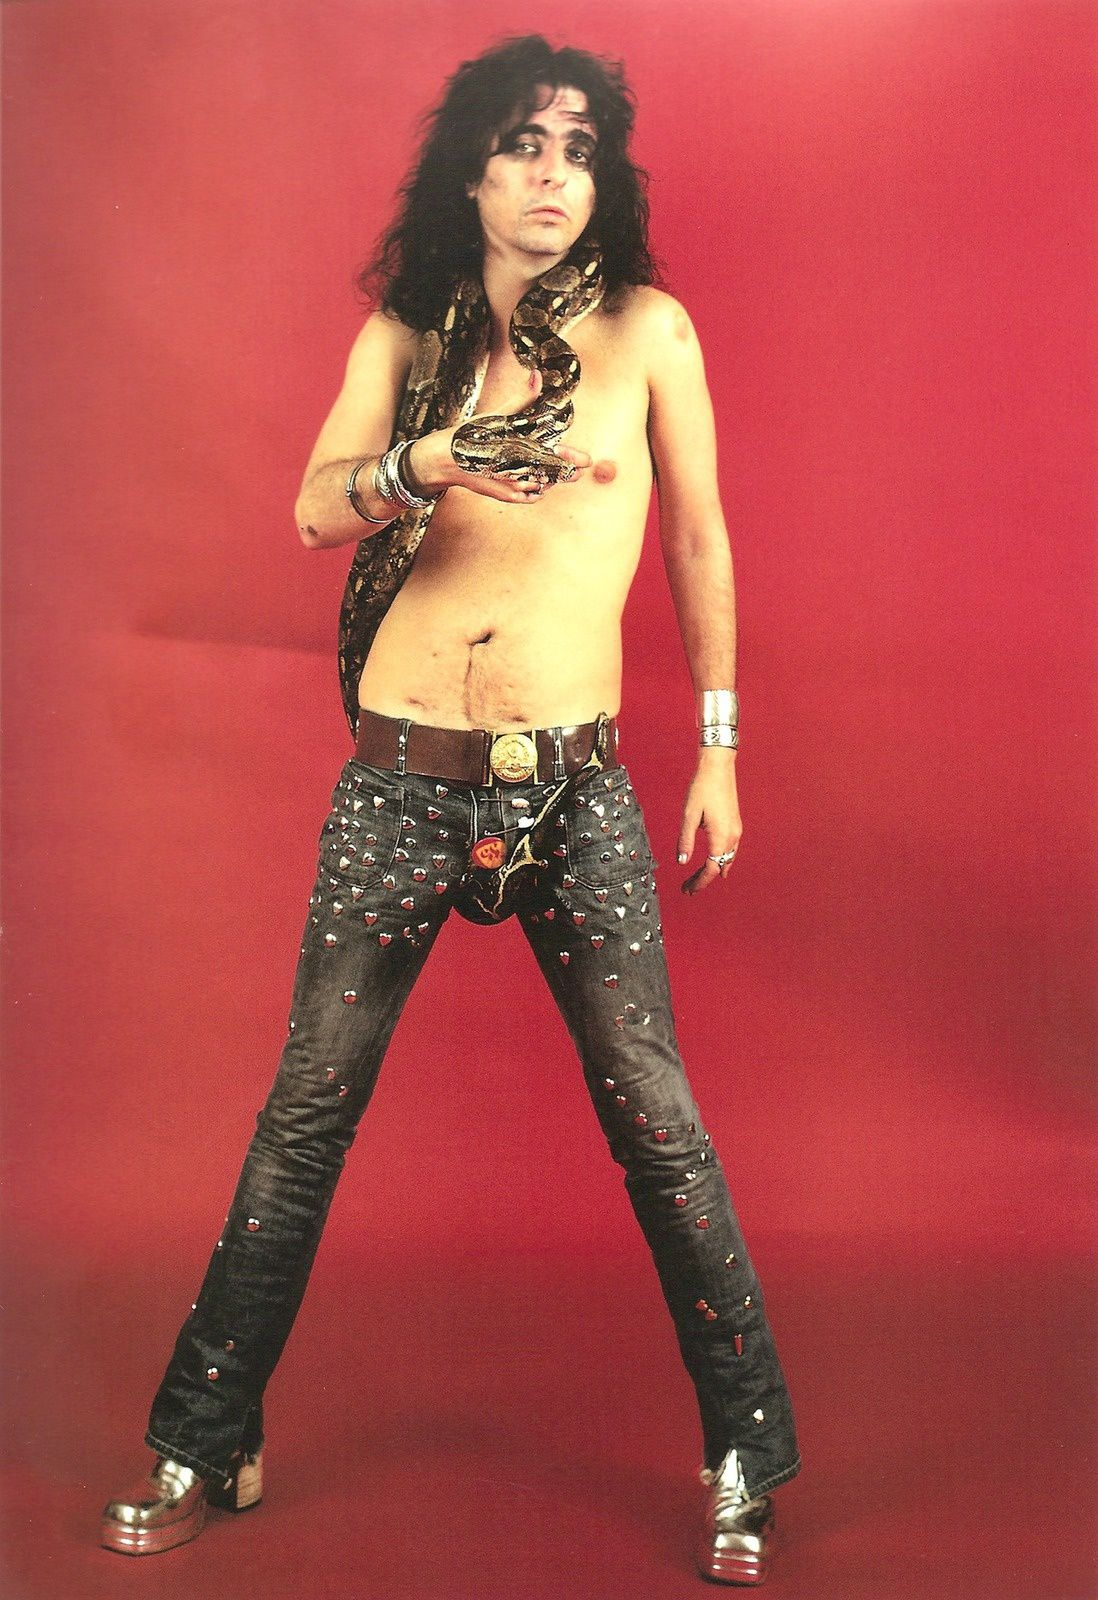 Alice Cooper with a snake